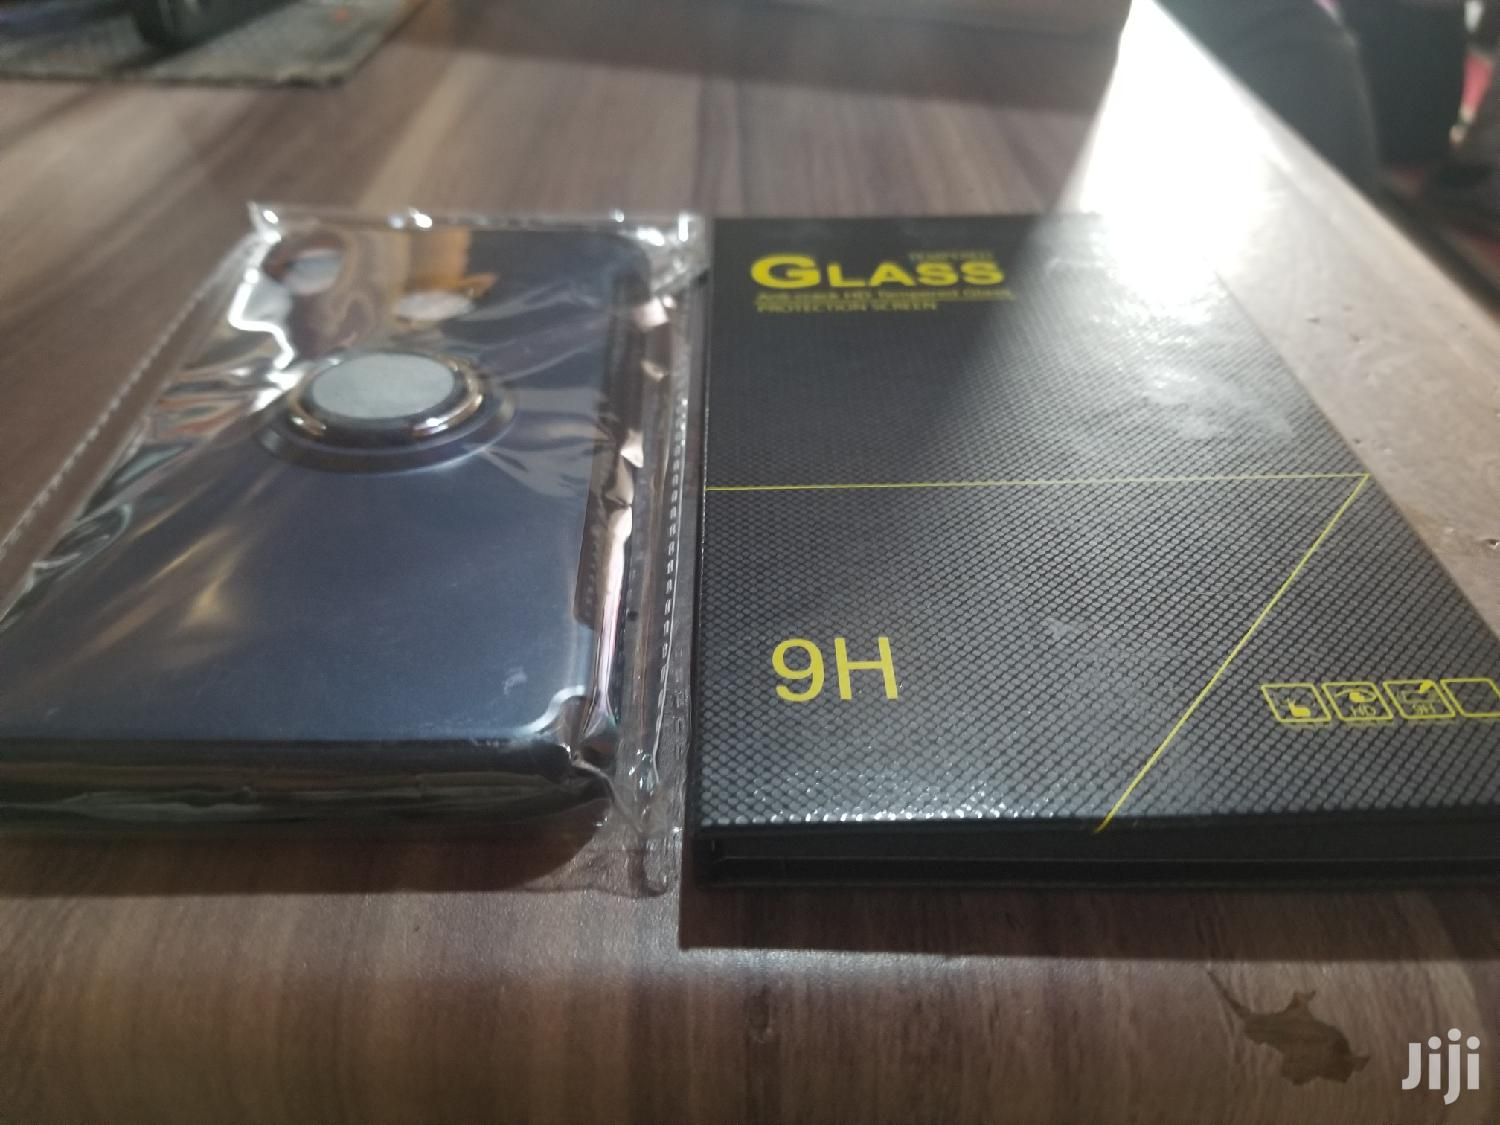 Huawei Nova 3i Case And Glass Protector For Sale | Accessories for Mobile Phones & Tablets for sale in Achimota, Greater Accra, Ghana